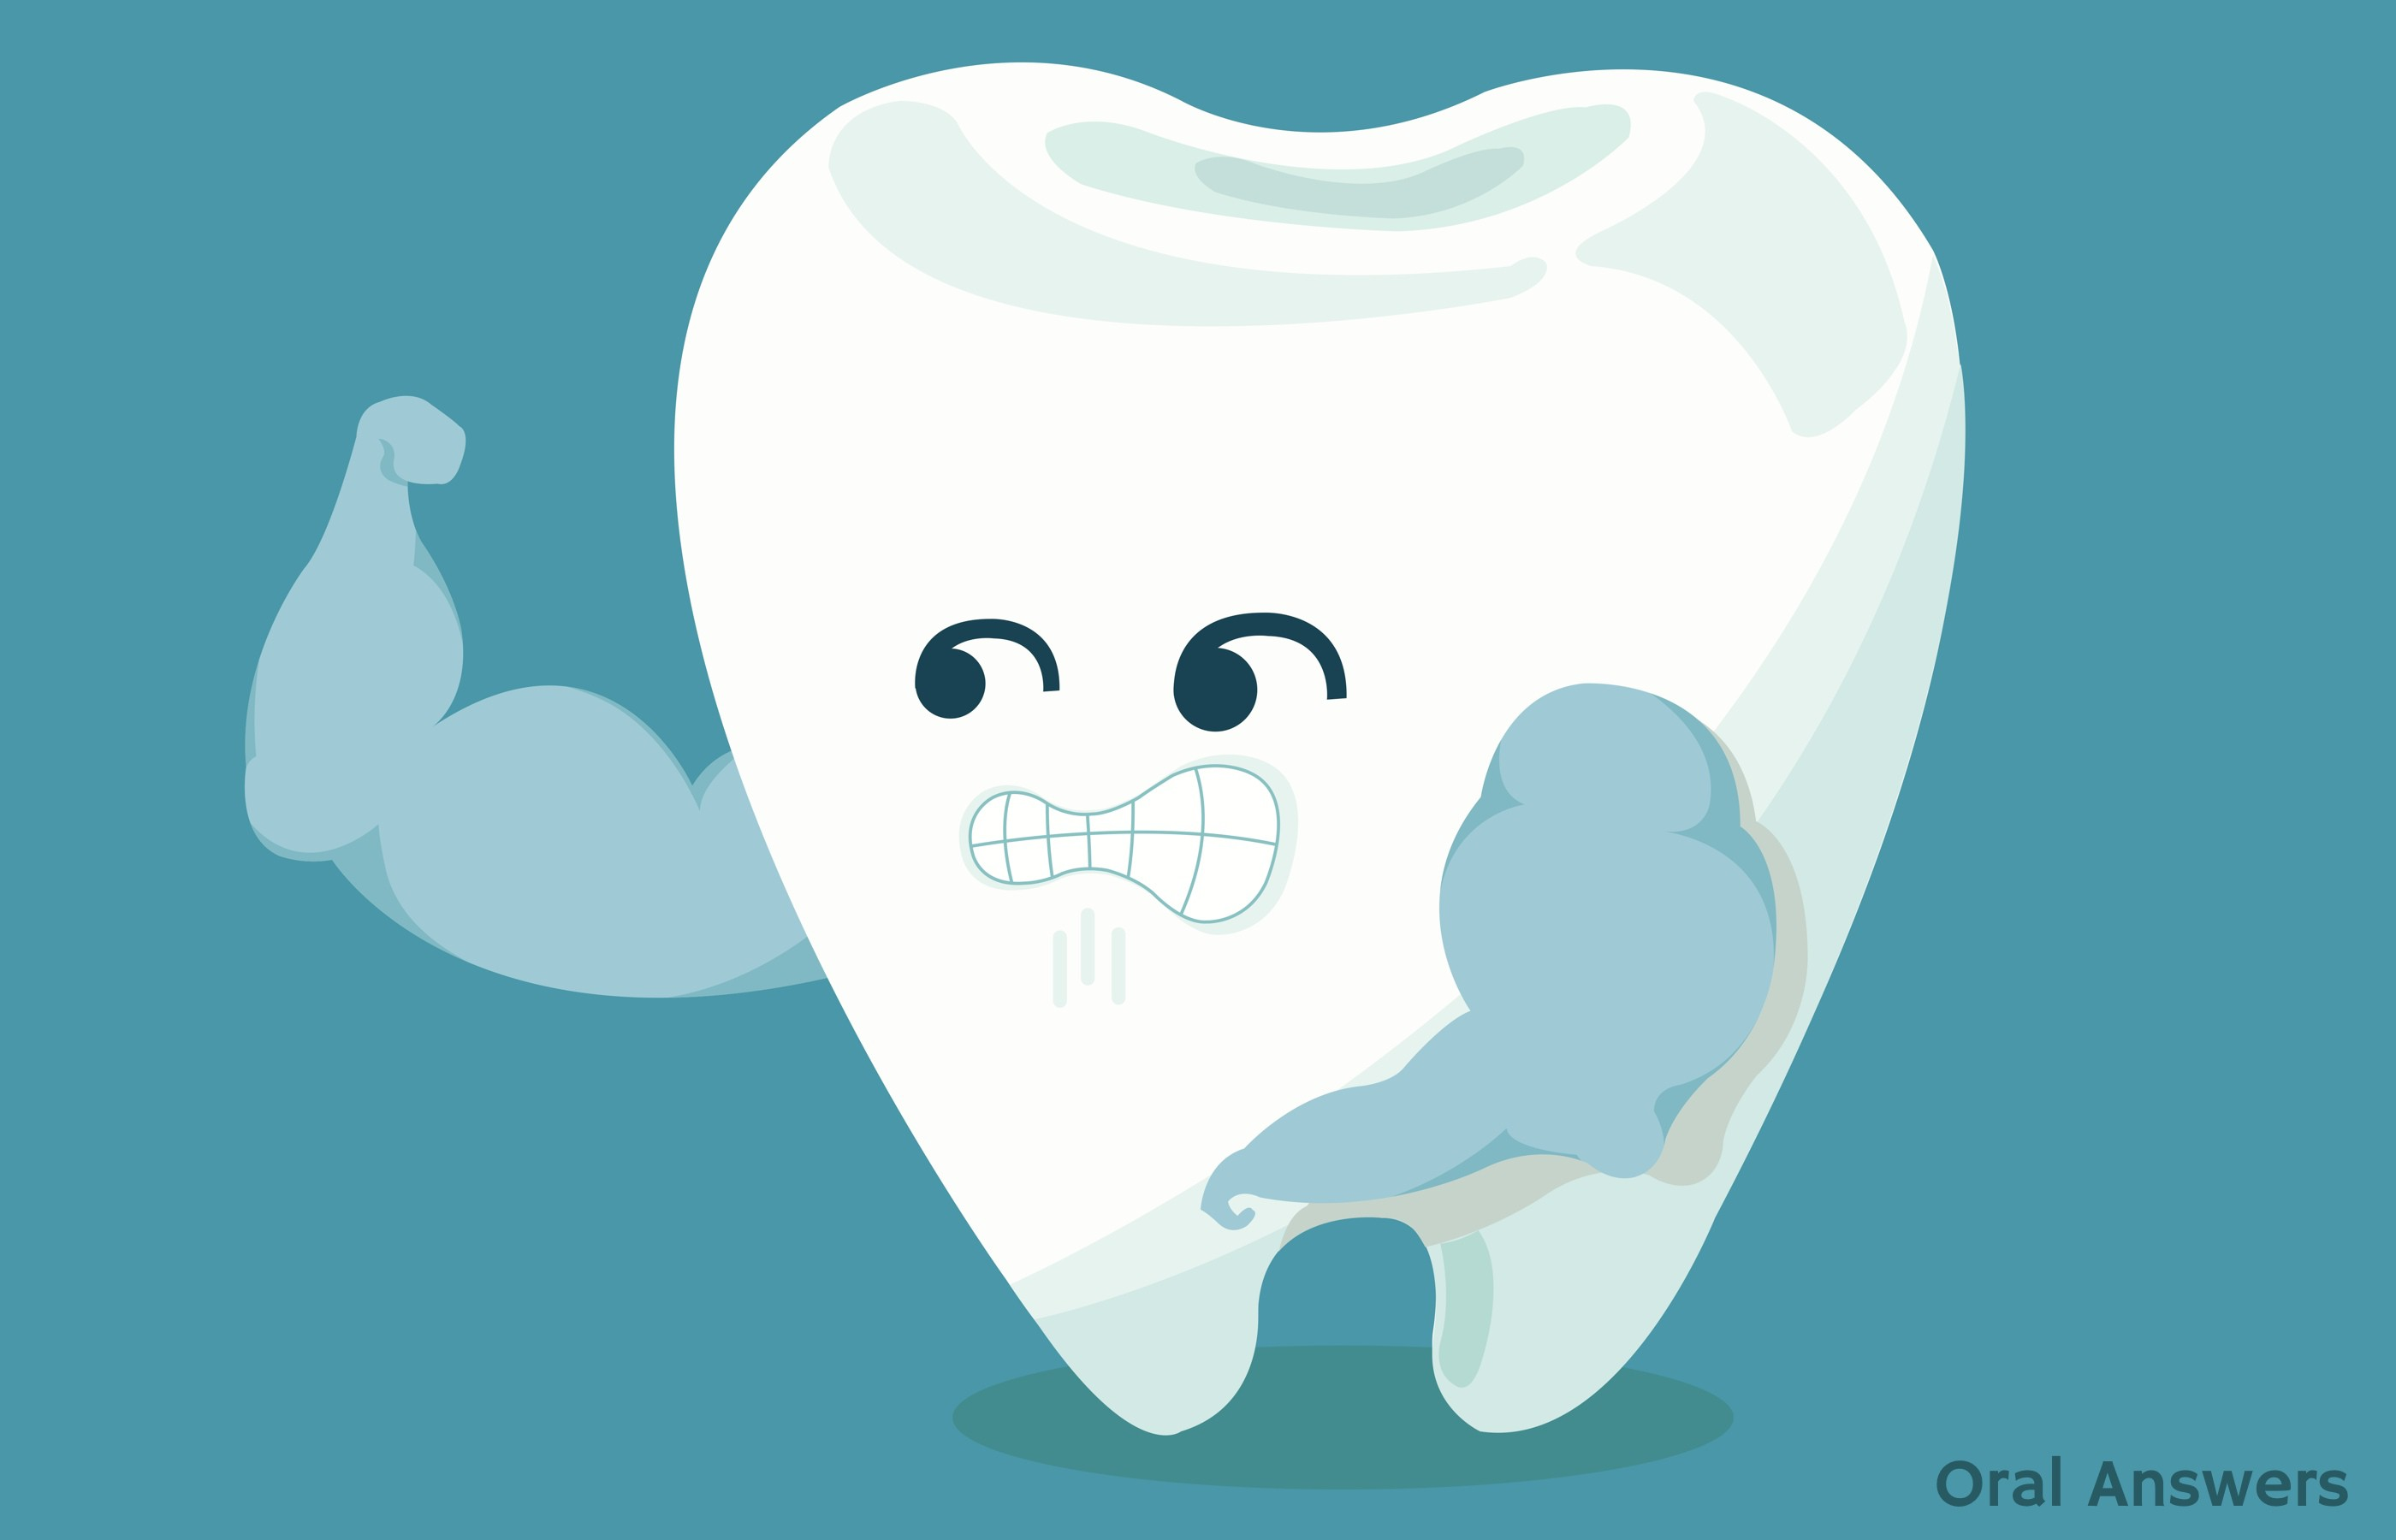 The Anatomy Of A Tooth Oral Answers